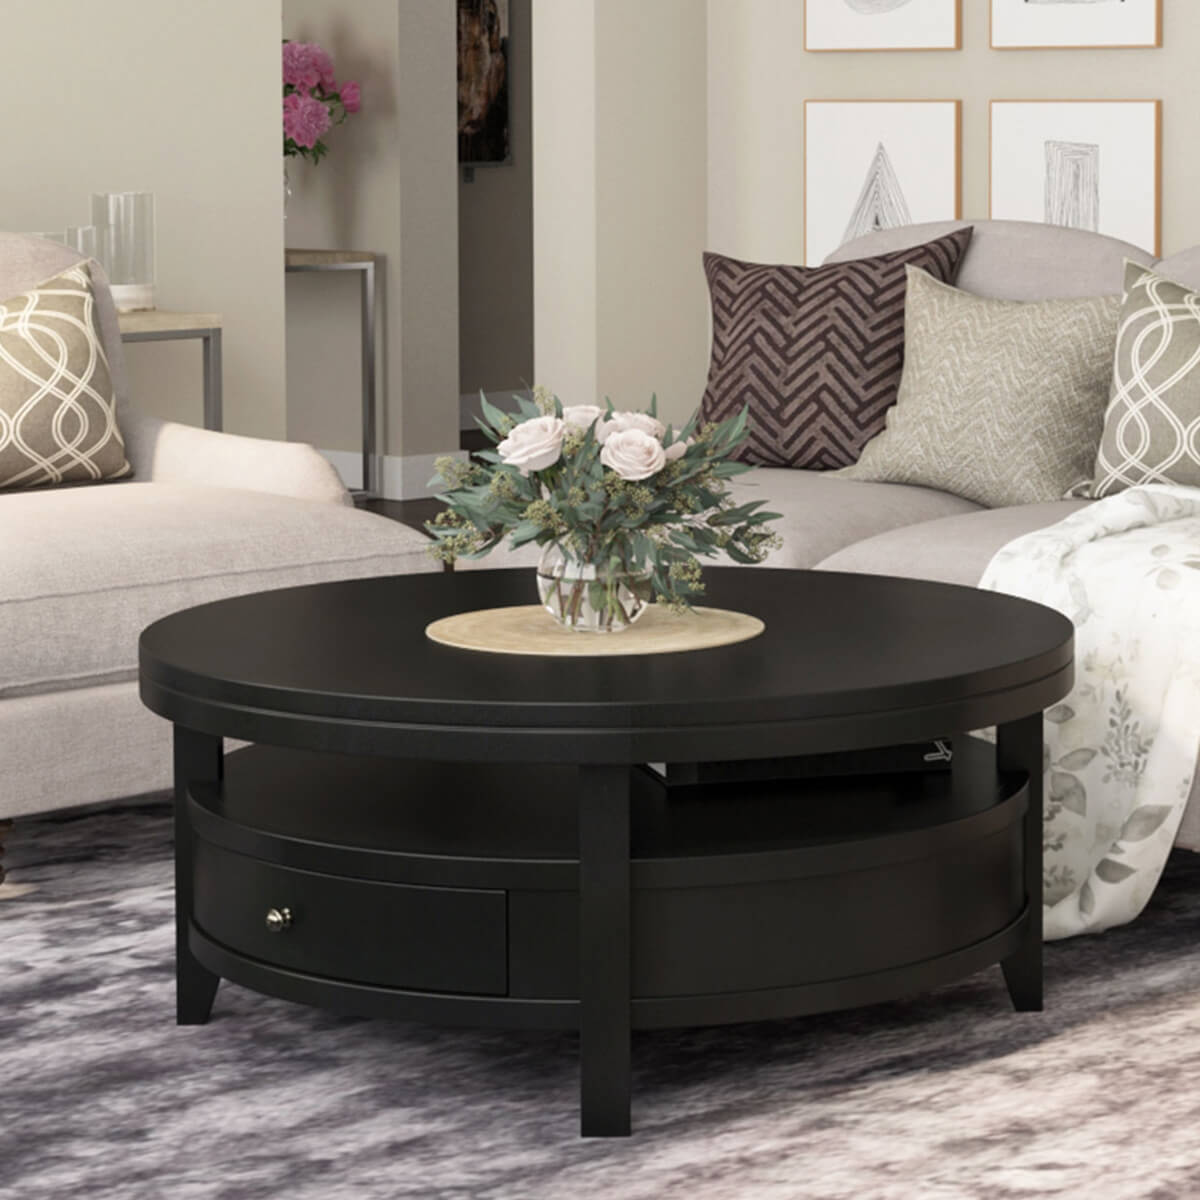 toledo solid wood black modern round coffee table